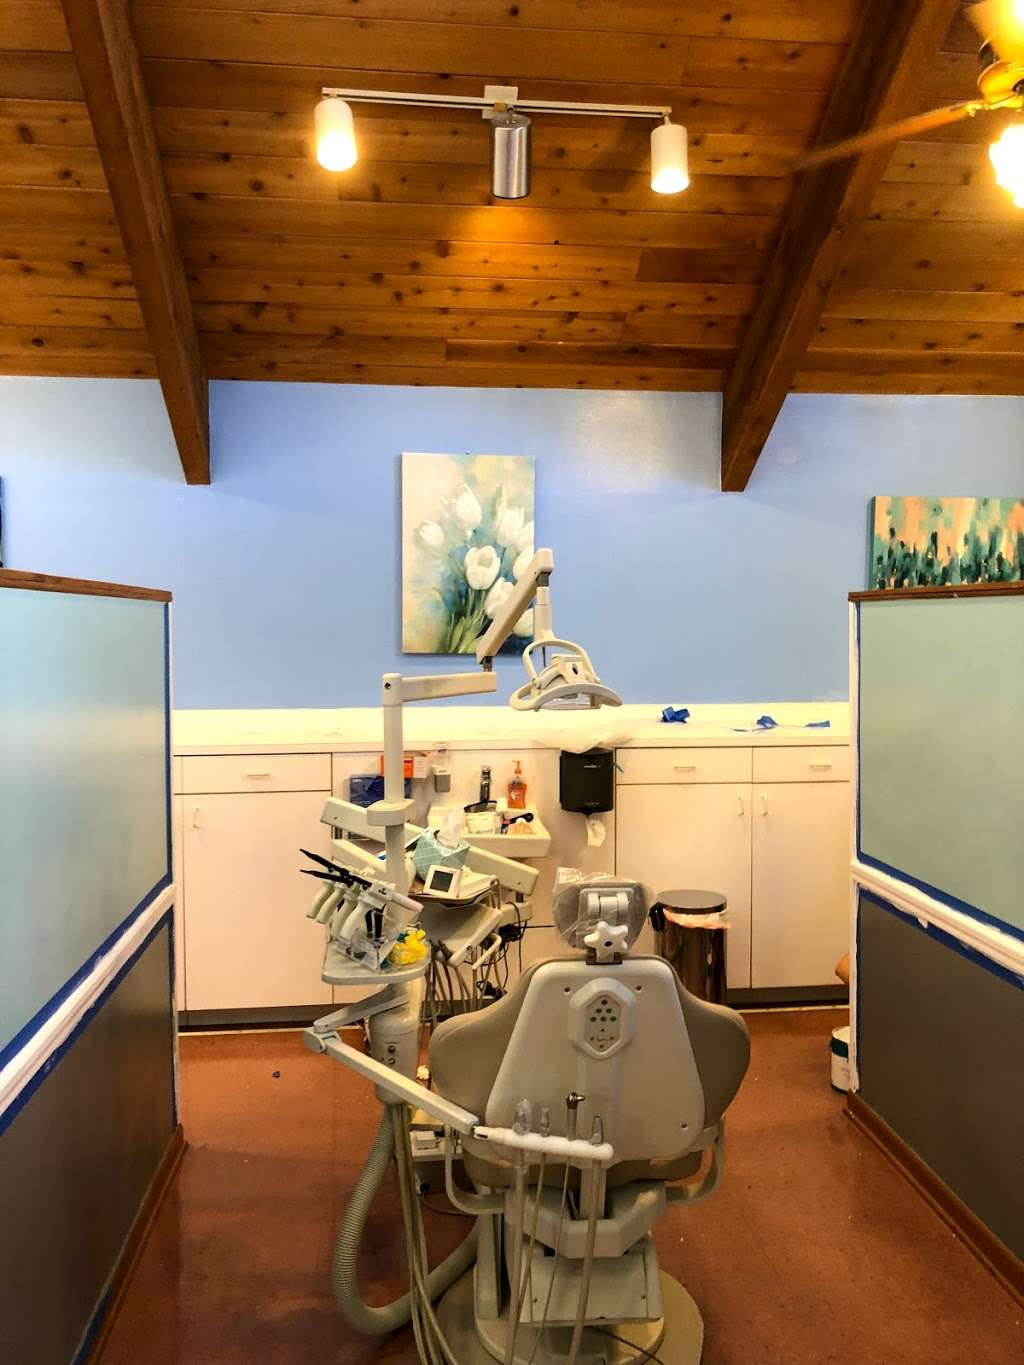 Lumina Dental Lakeland (formerly Dr. Sutton) - dentist  | Photo 3 of 10 | Address: 4912 Southfork Dr, Lakeland, FL 33813, USA | Phone: (863) 455-4348